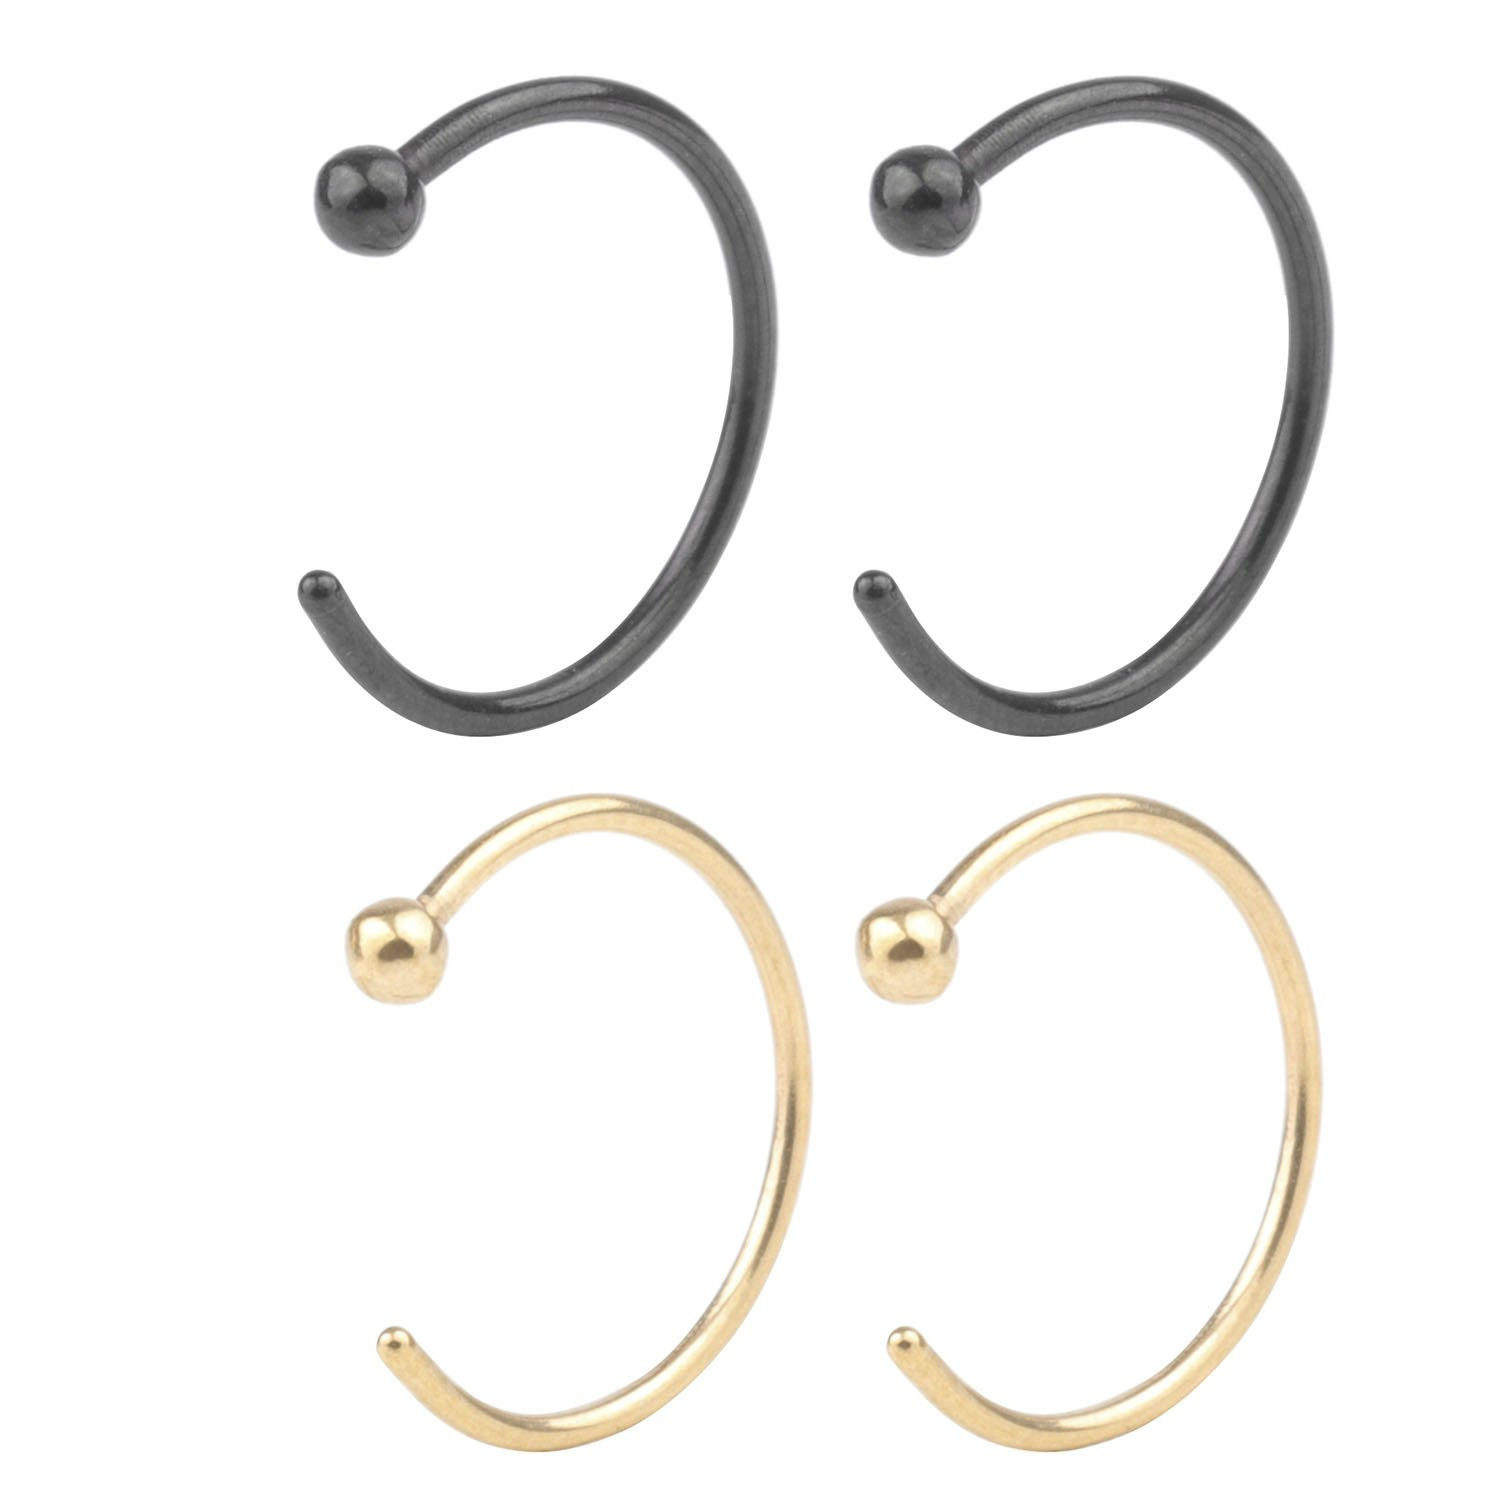 CM's 4 Pcs 20G 10mm Stainless Steel Hoop Nose Ring Studs Body Jewelry Piercing &5